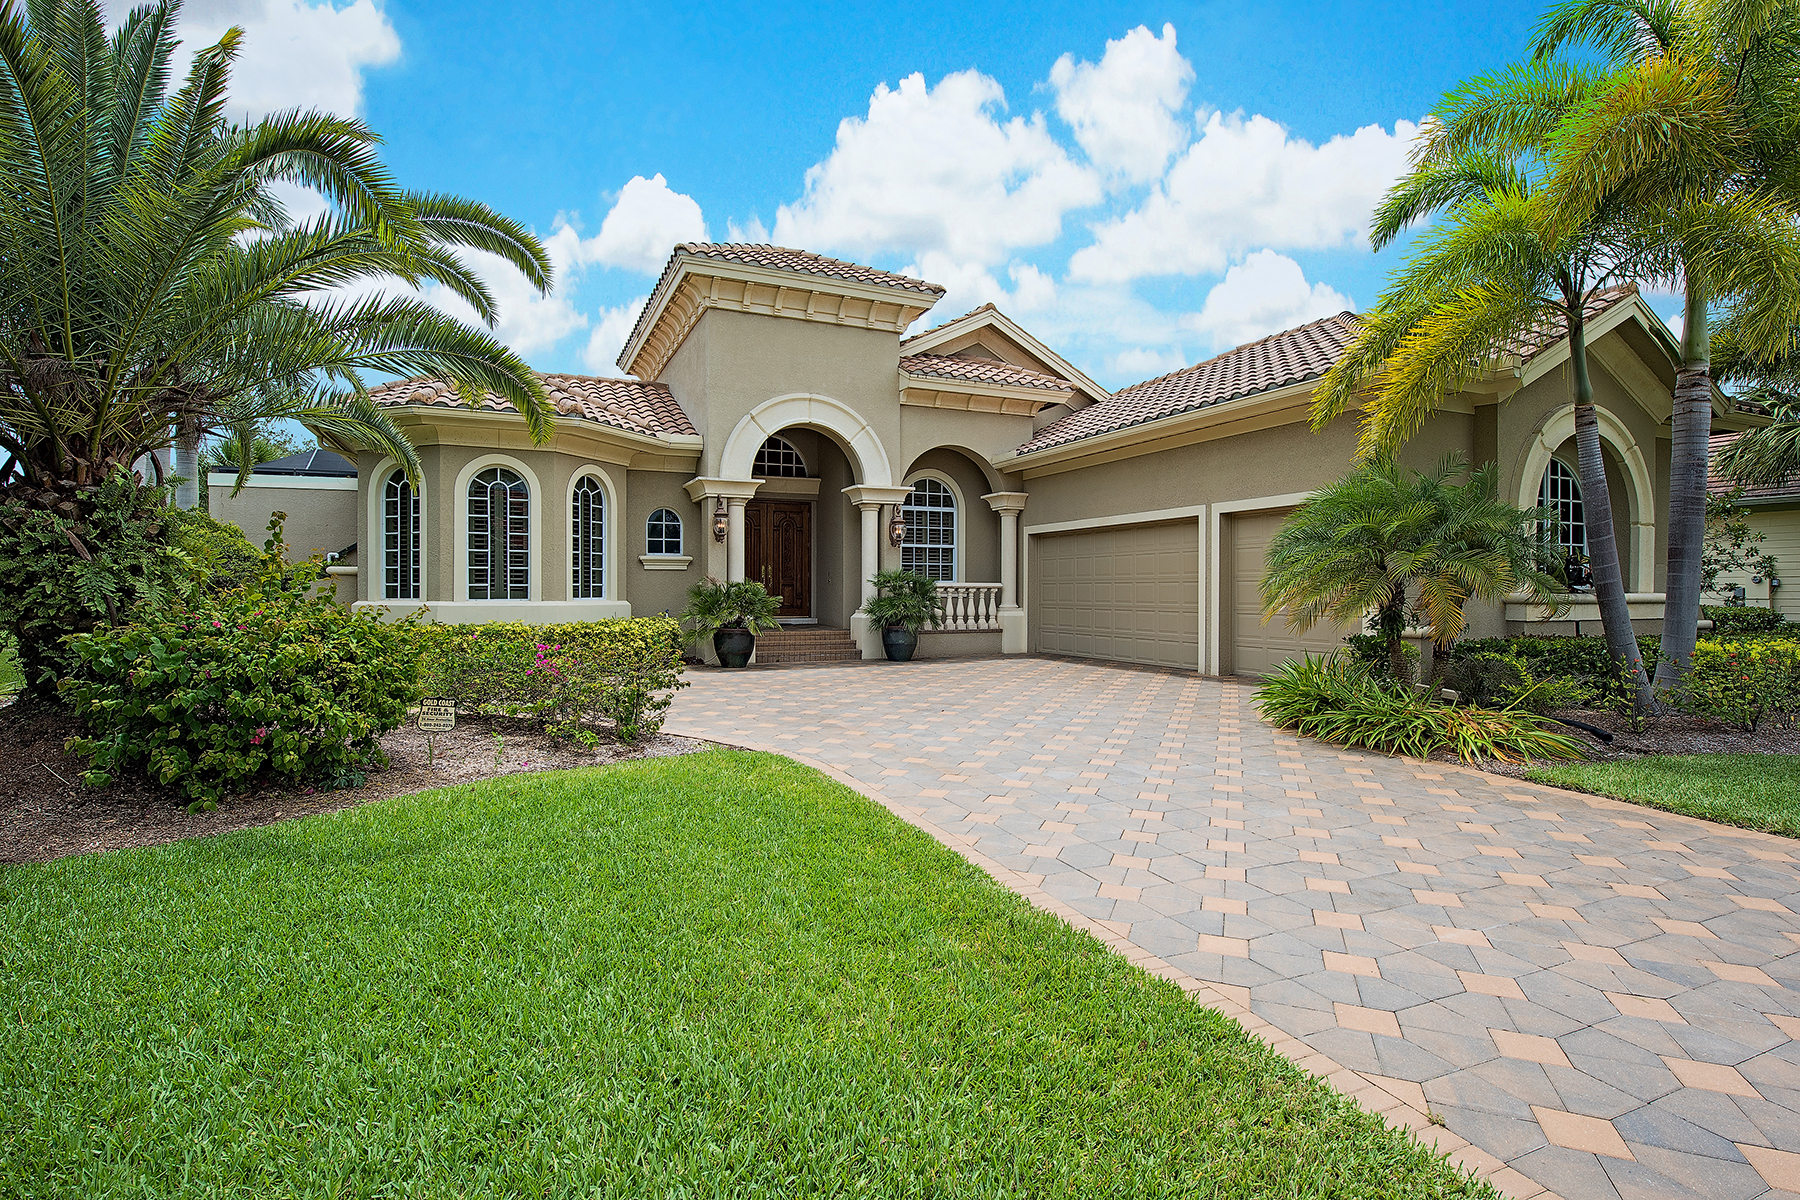 Single Family Homes for Sale at VERANDAH - SANCTUARY POINT 3321 Sanctuary Point Fort Myers, Florida 33905 United States